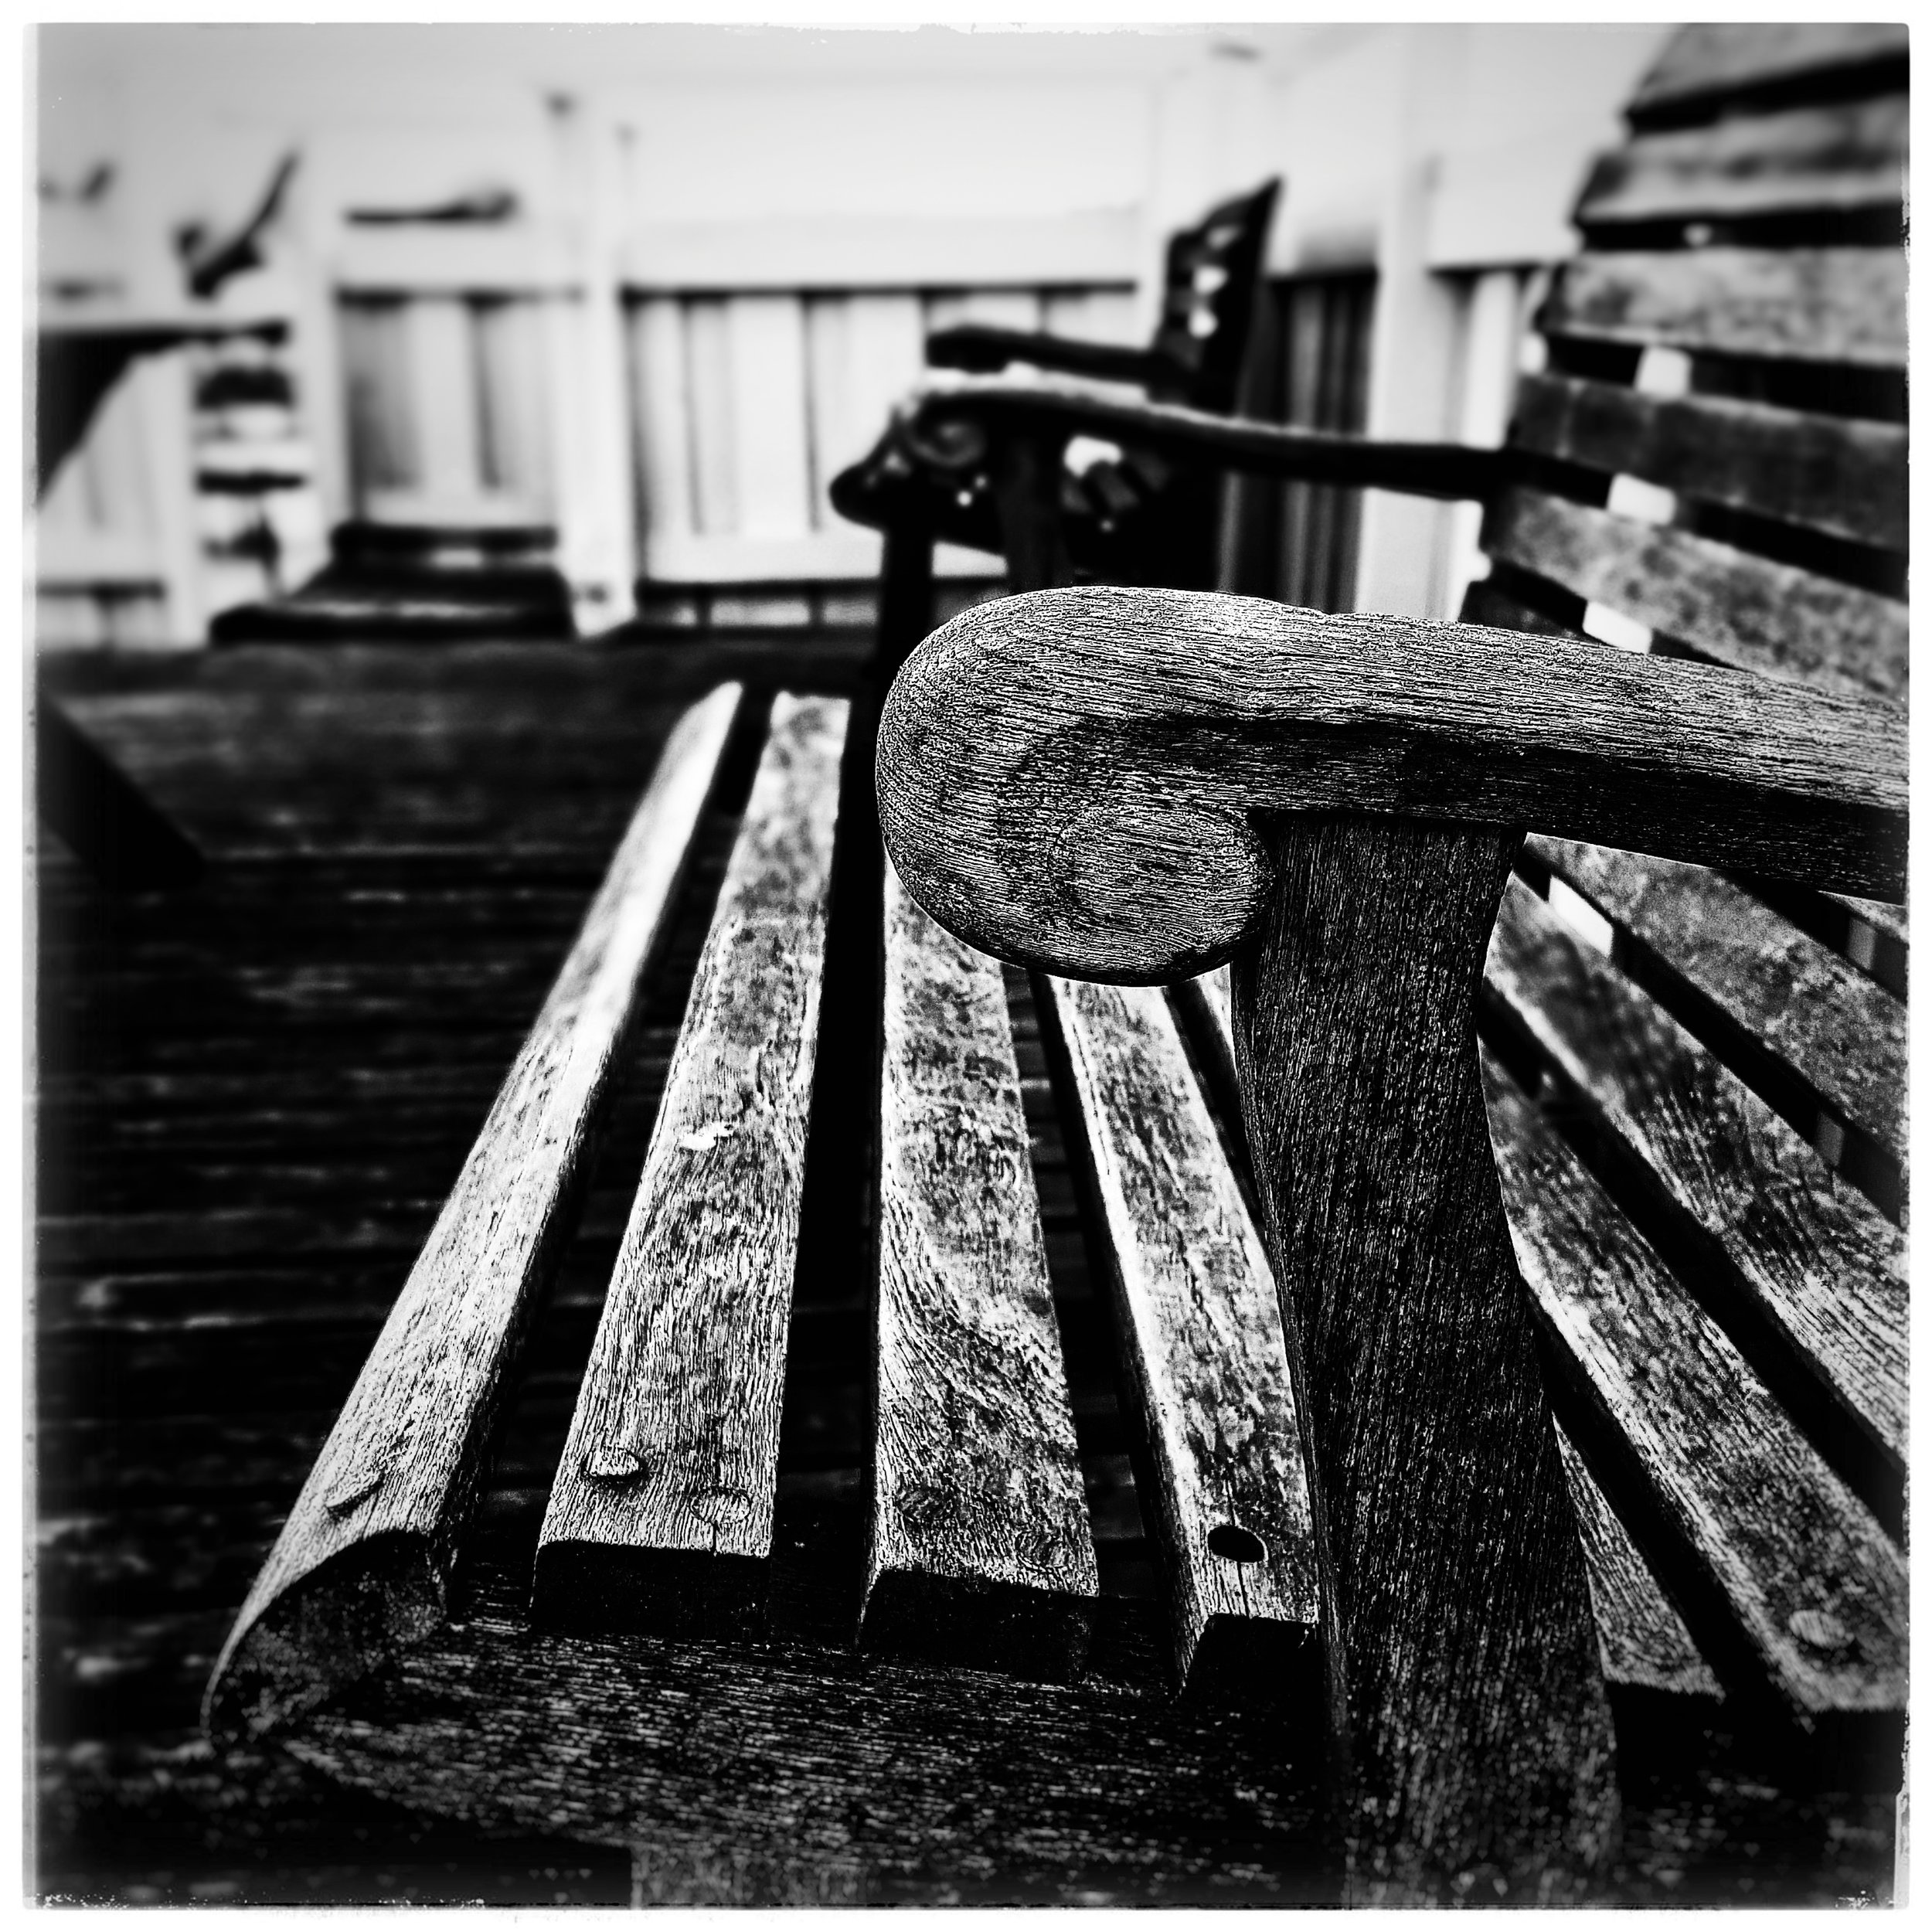 Day 311 - November 7: Sit for a spell